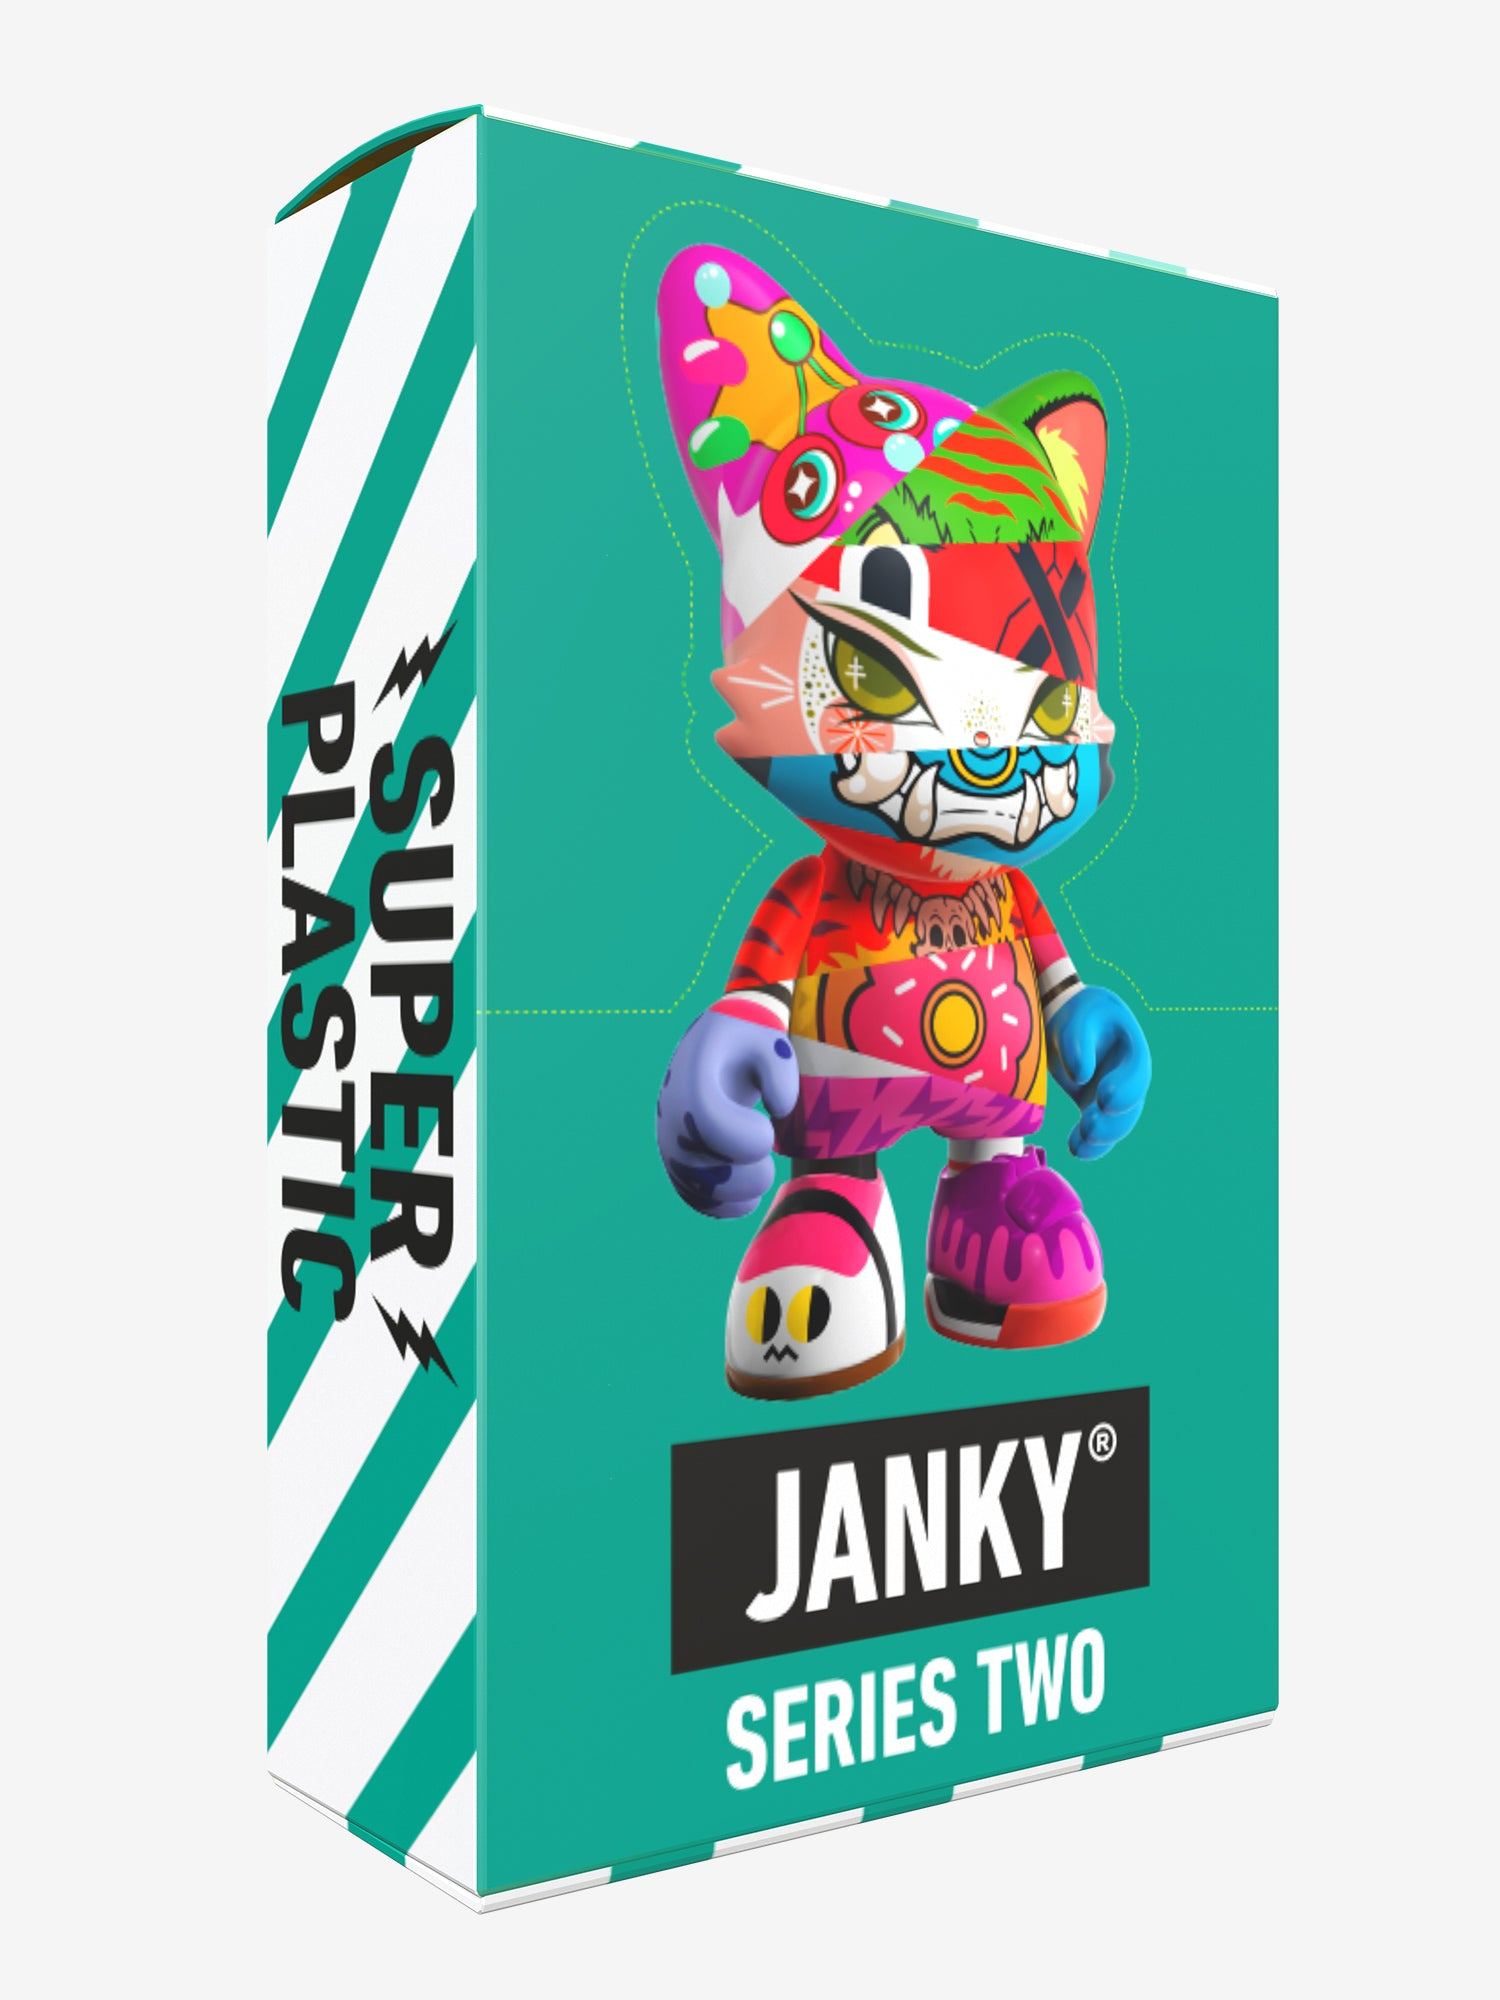 Janky Series Two [SHIPS MAY 2020]